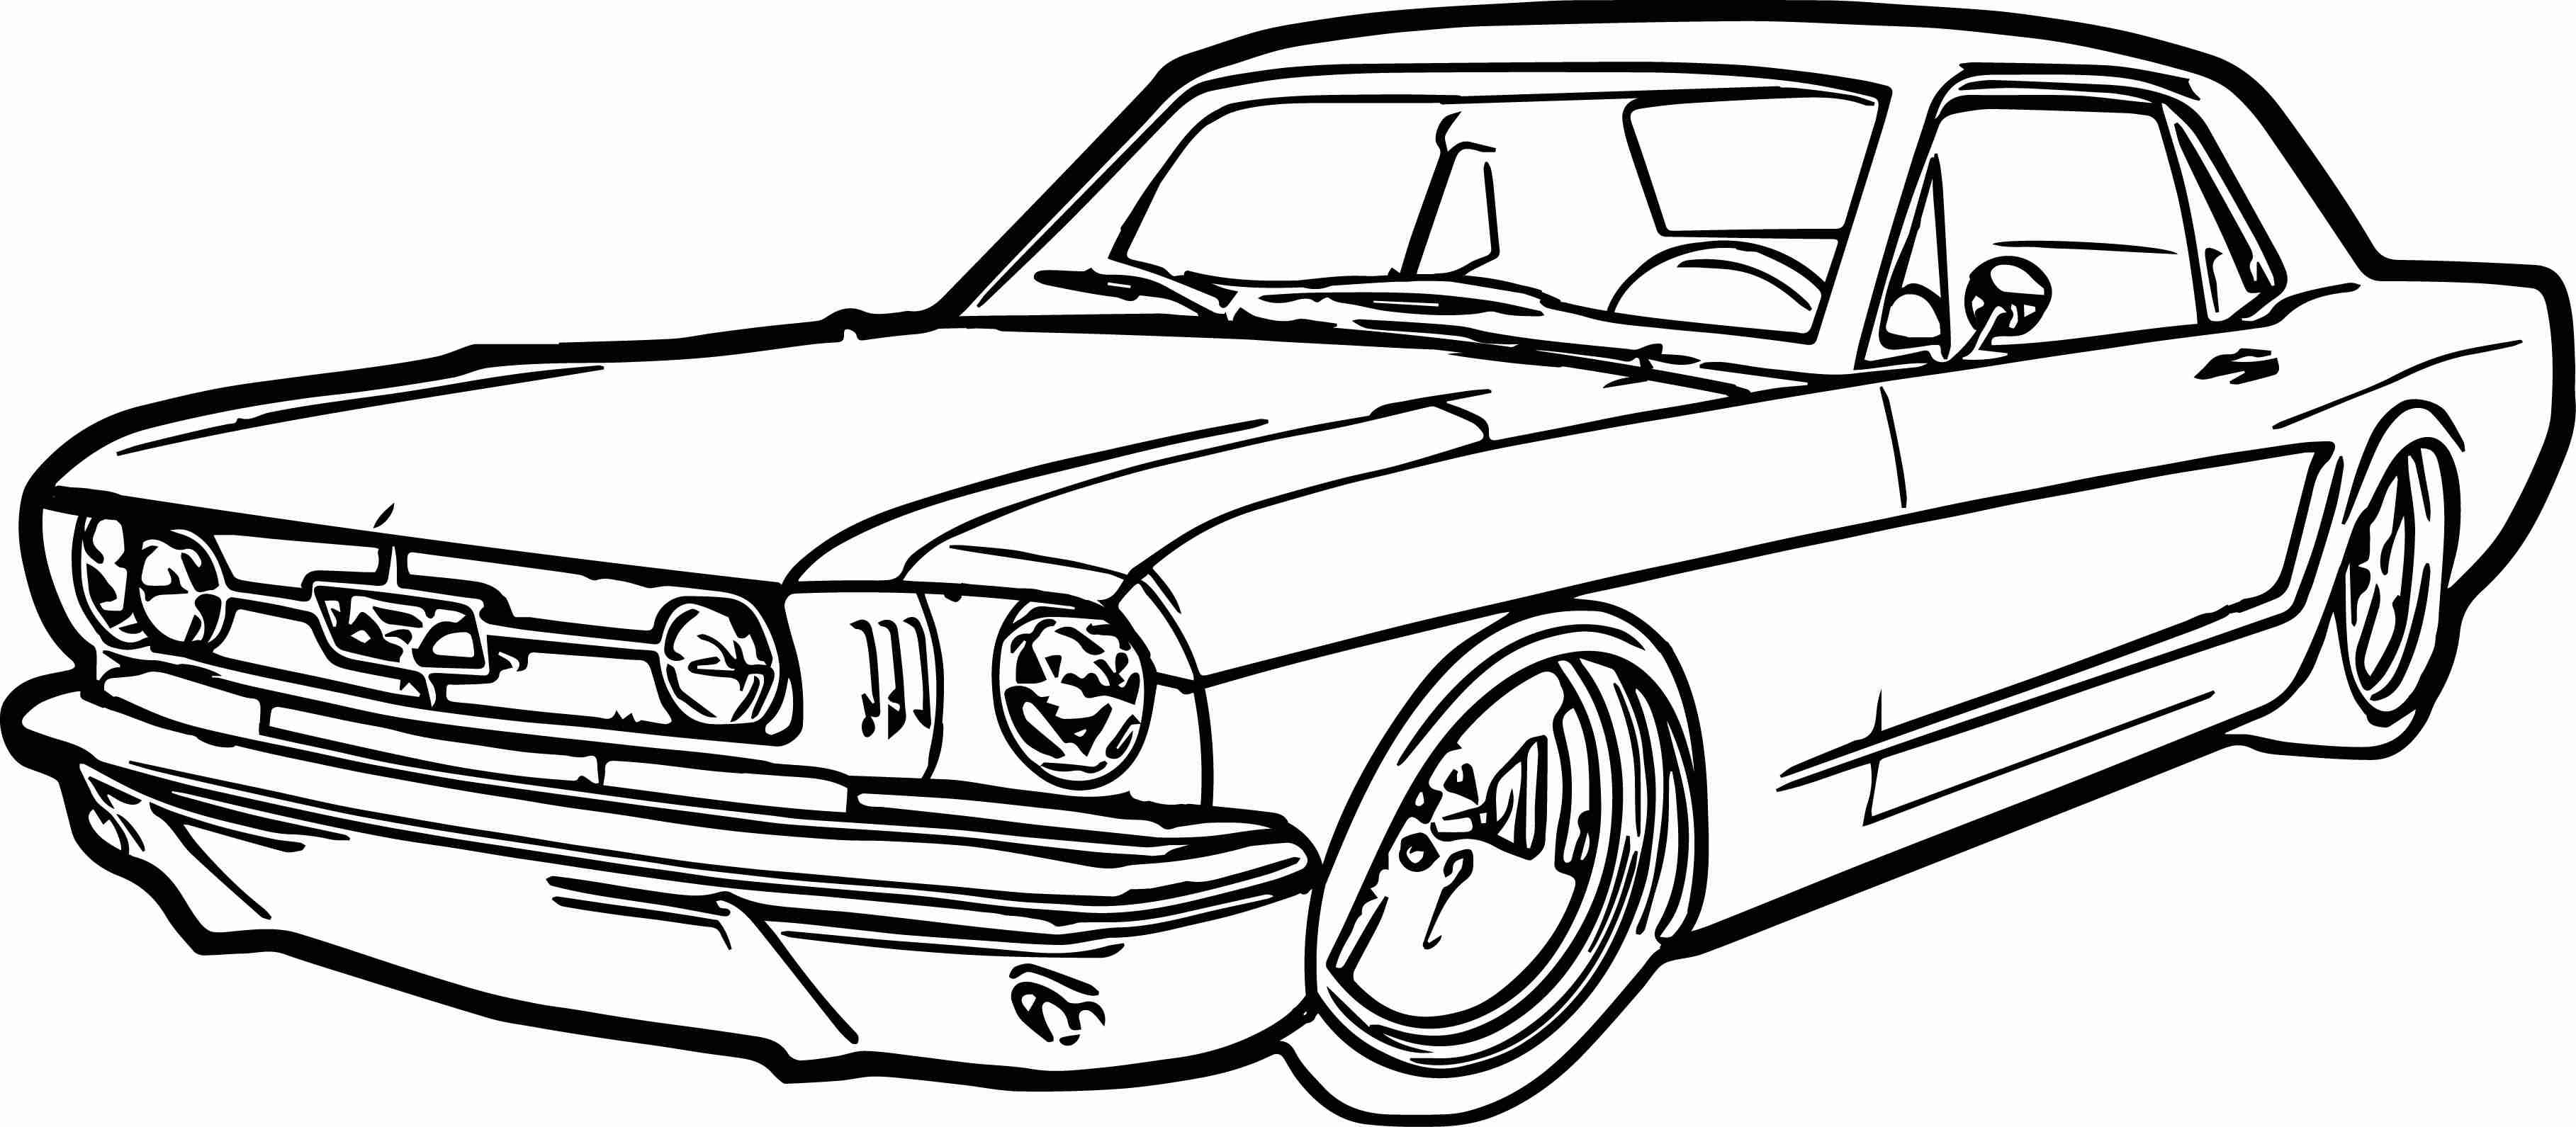 Camaro Ss Coloring Pages At Getcolorings